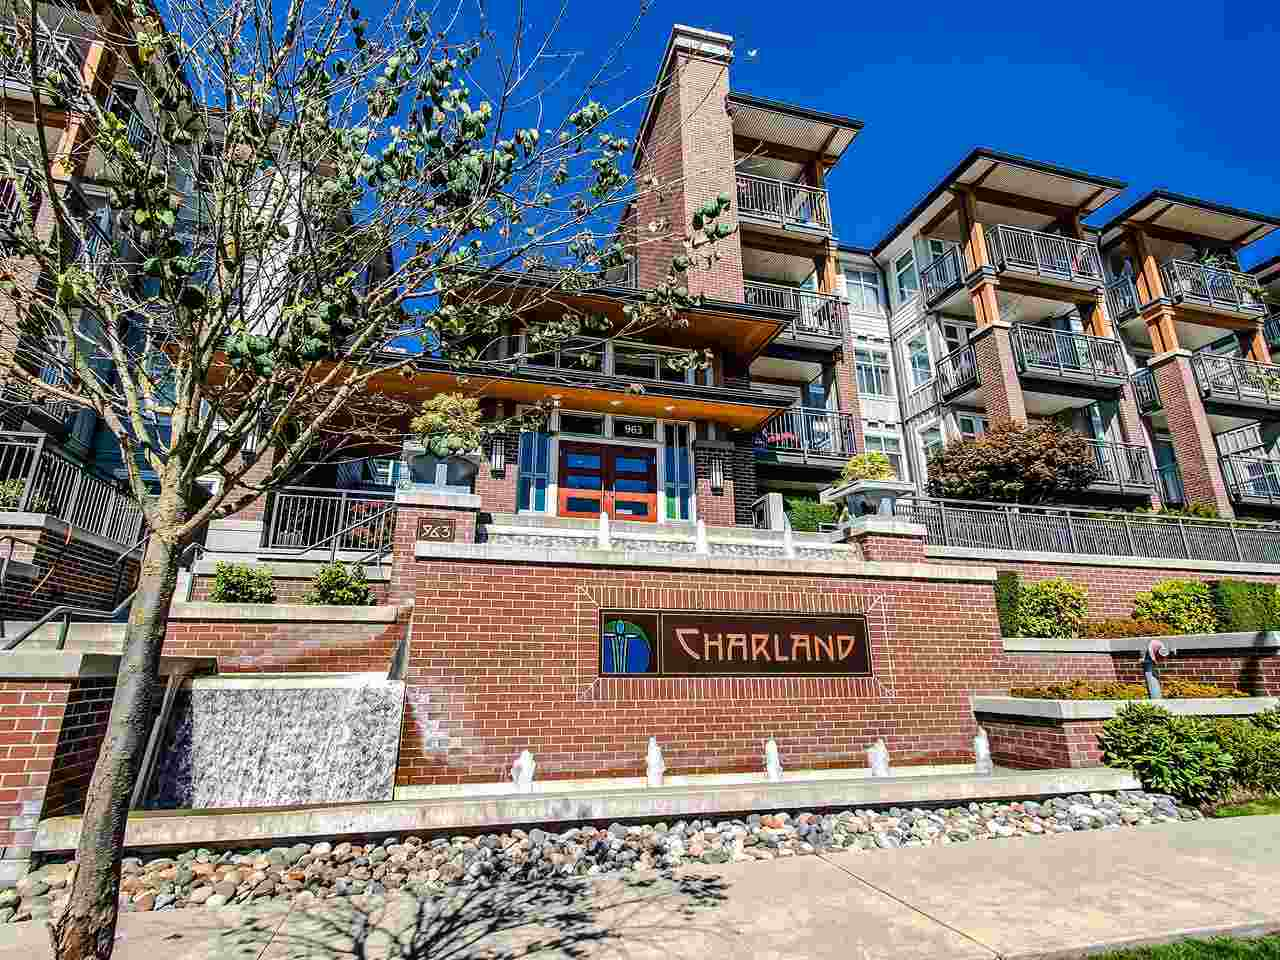 2104 963 CHARLAND AVENUE - Central Coquitlam Apartment/Condo for sale, 2 Bedrooms (R2492736) - #1